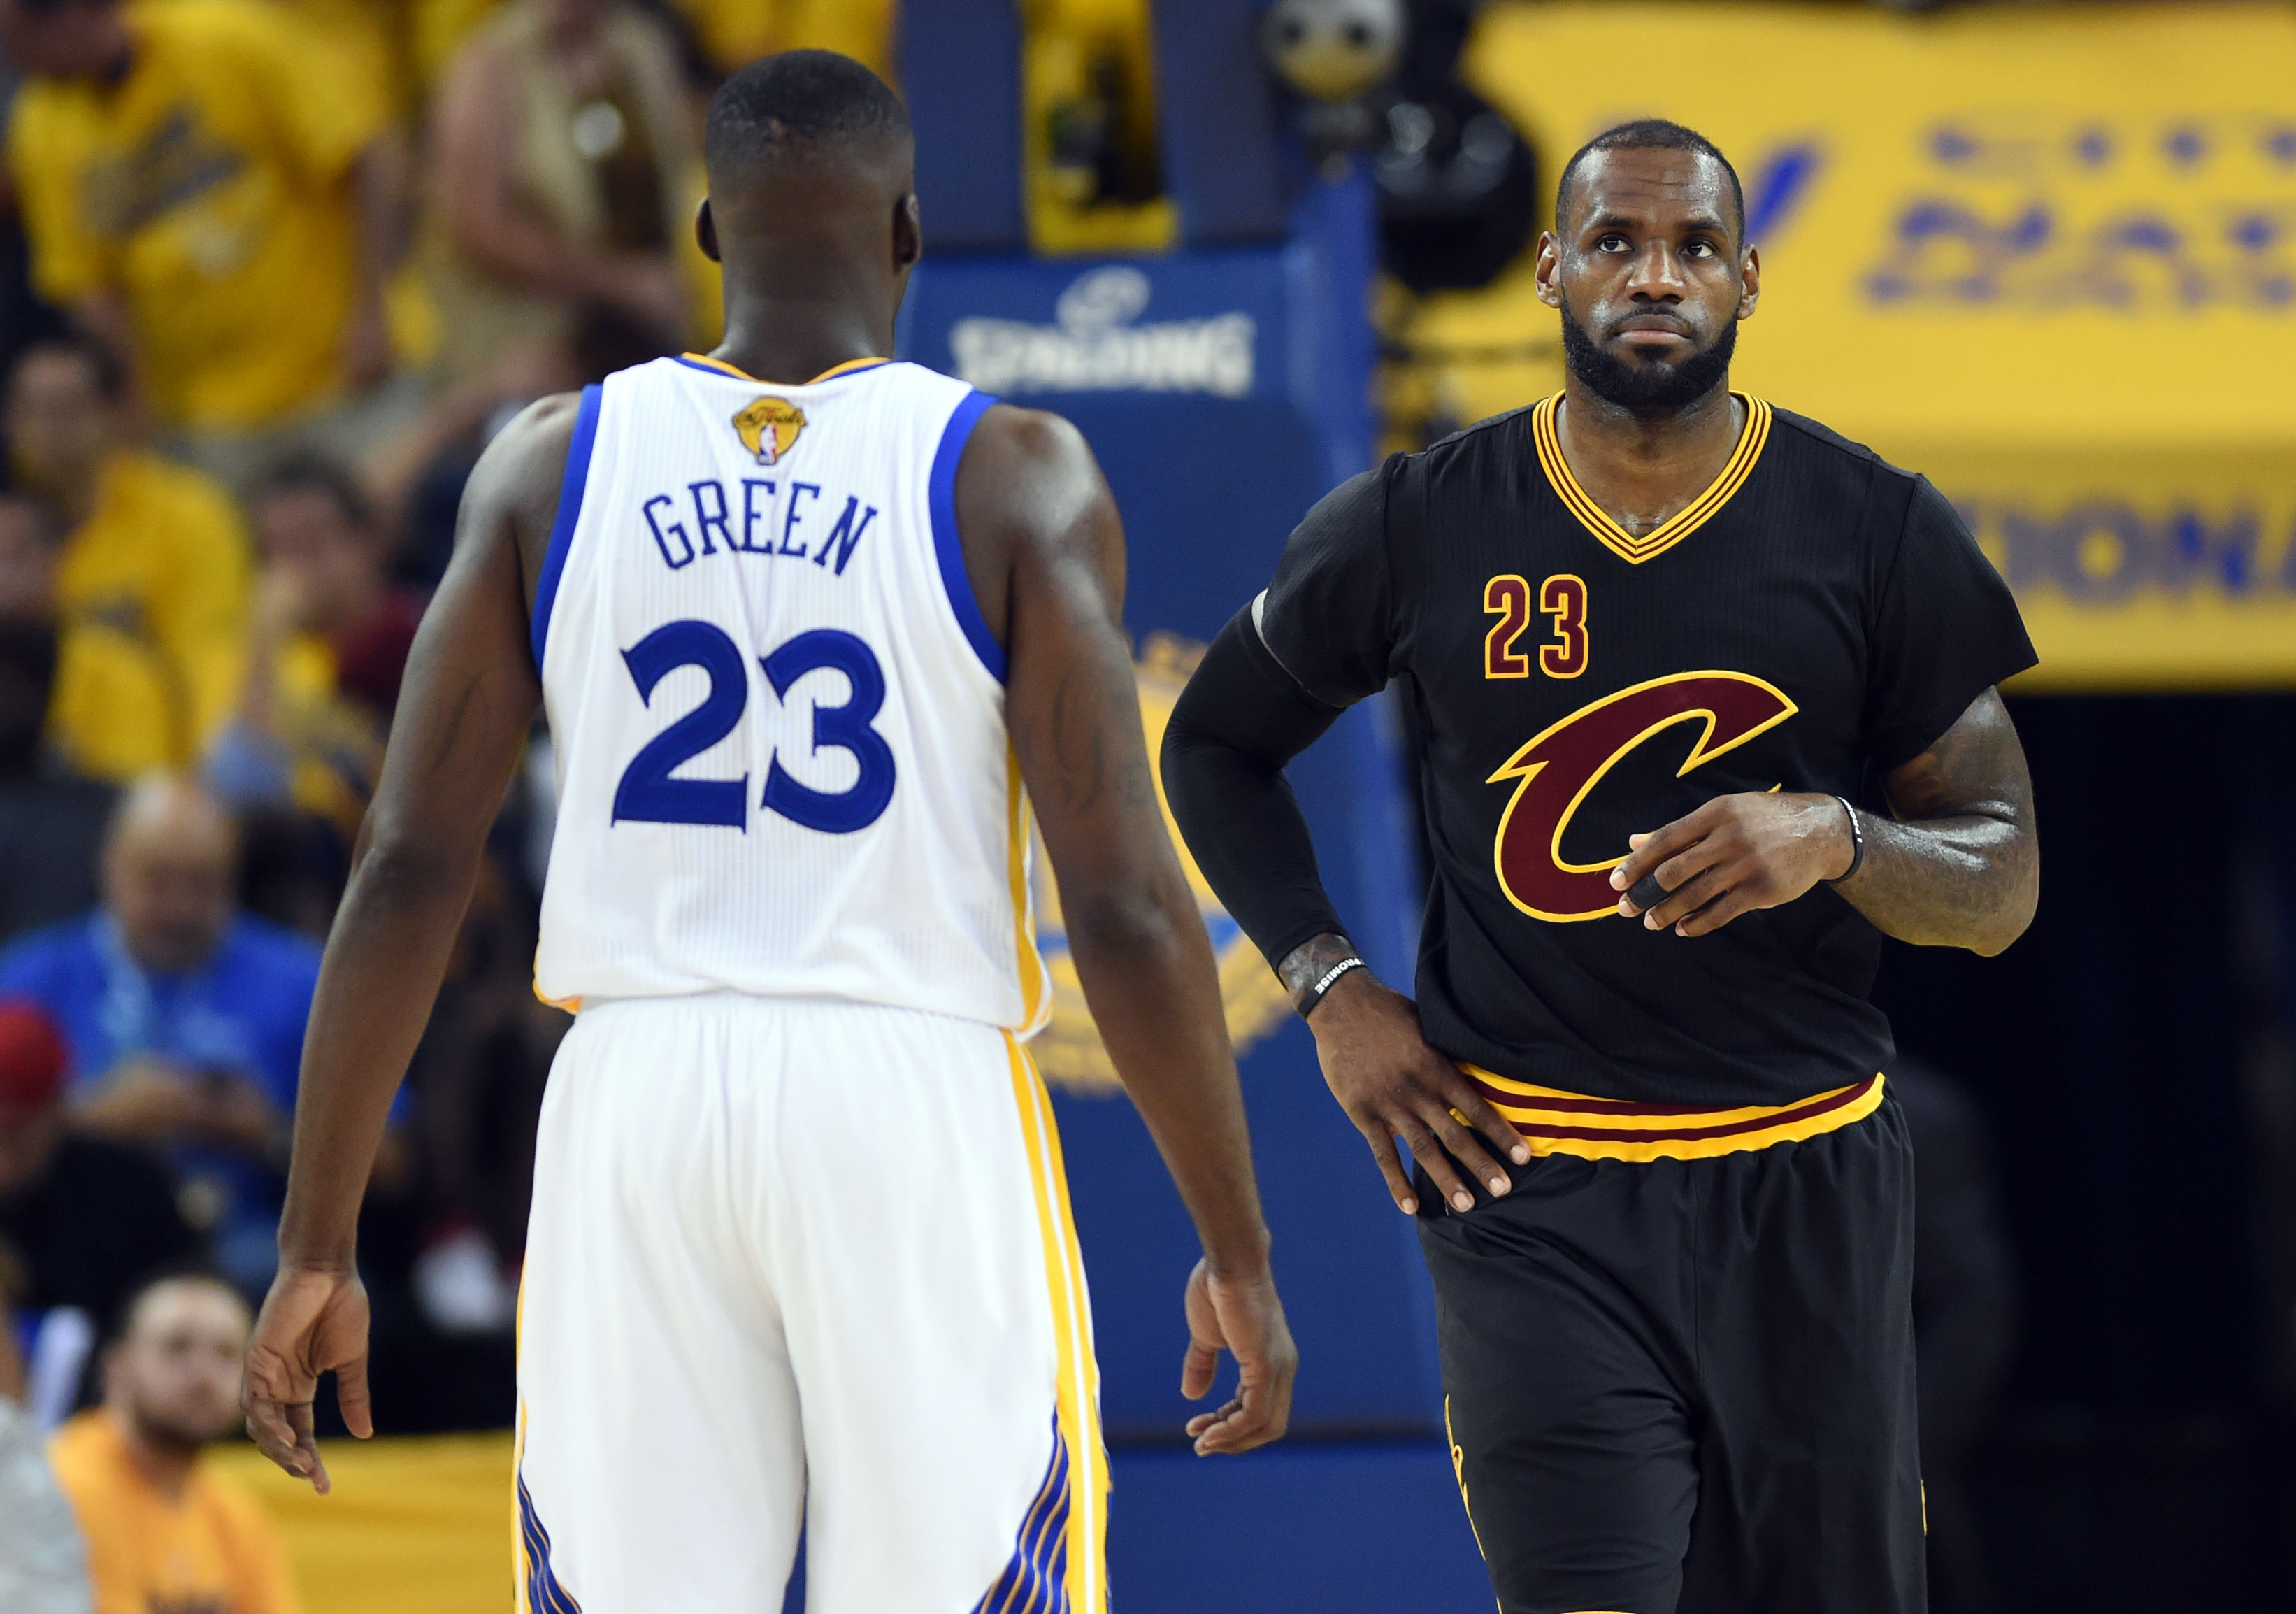 9349353-nba-finals-cleveland-cavaliers-at-golden-state-warriors